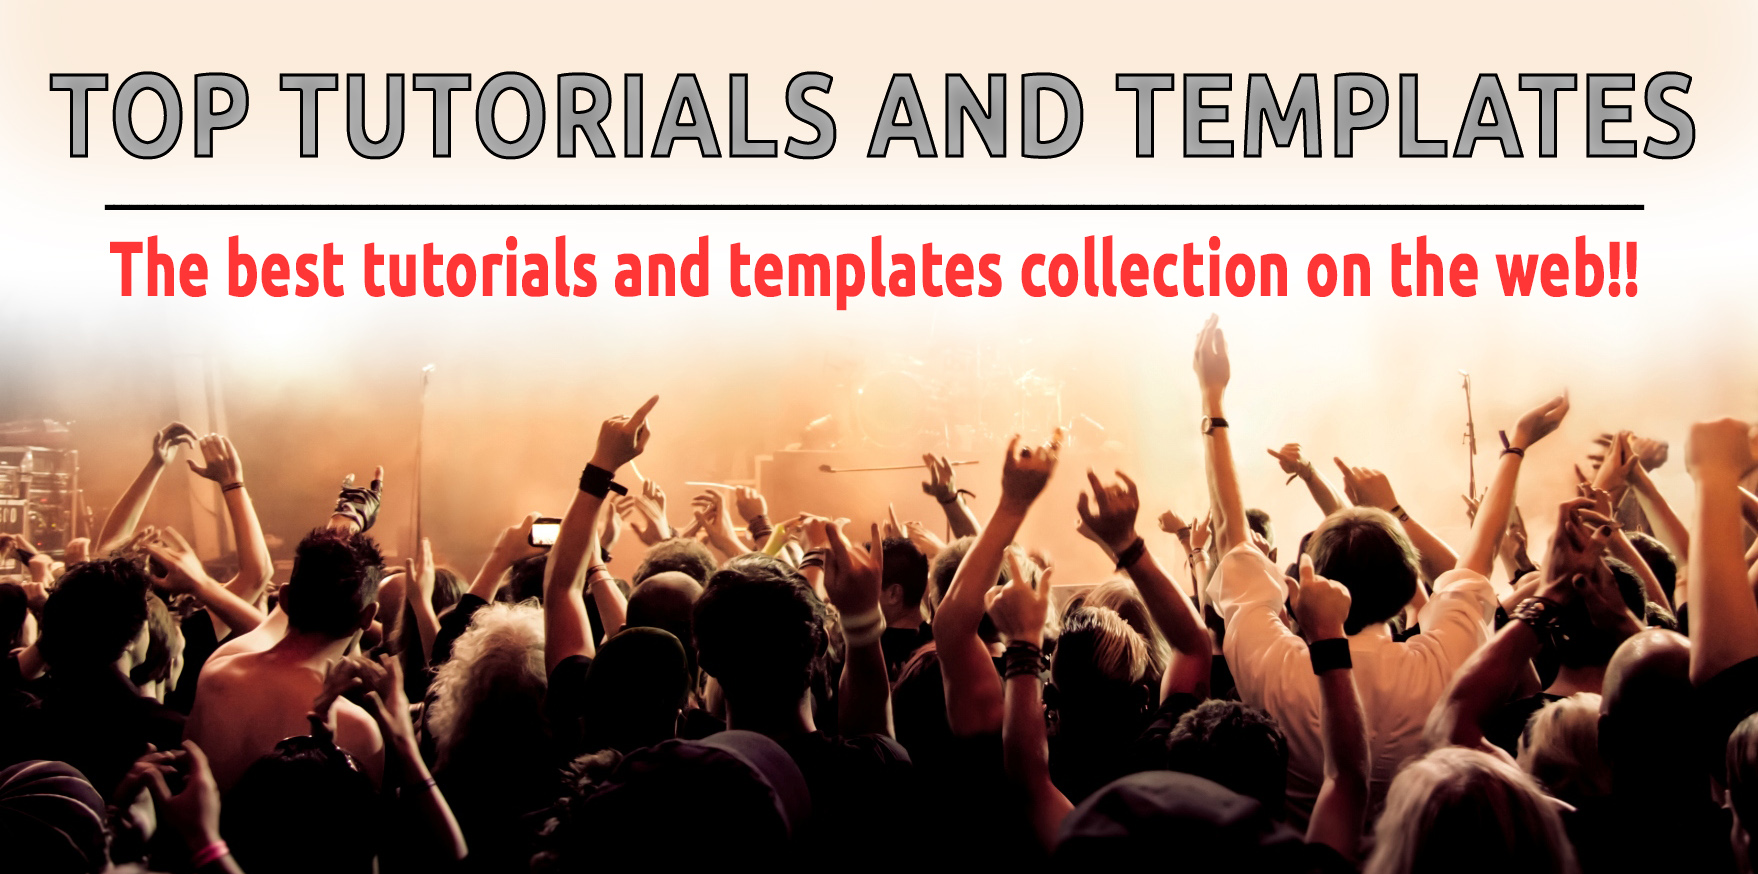 Top Tutorials and Templates